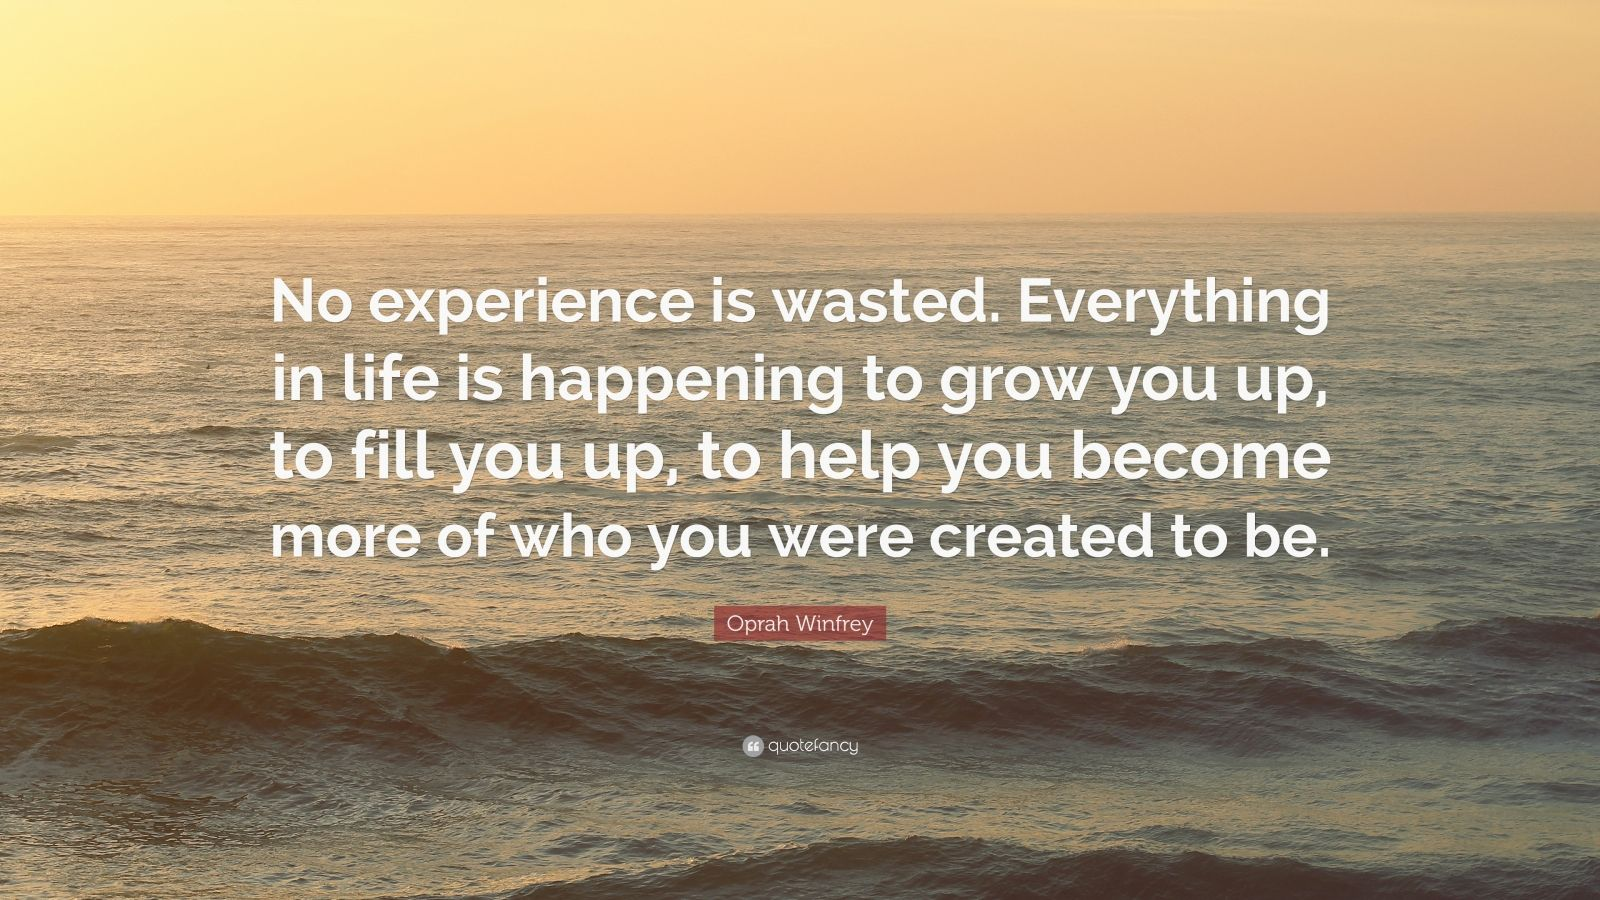 """Oprah Winfrey Quote: """"No experience is wasted. Everything in life is happening to grow you up, to fill you up, to help you become more of who you were created to be."""""""